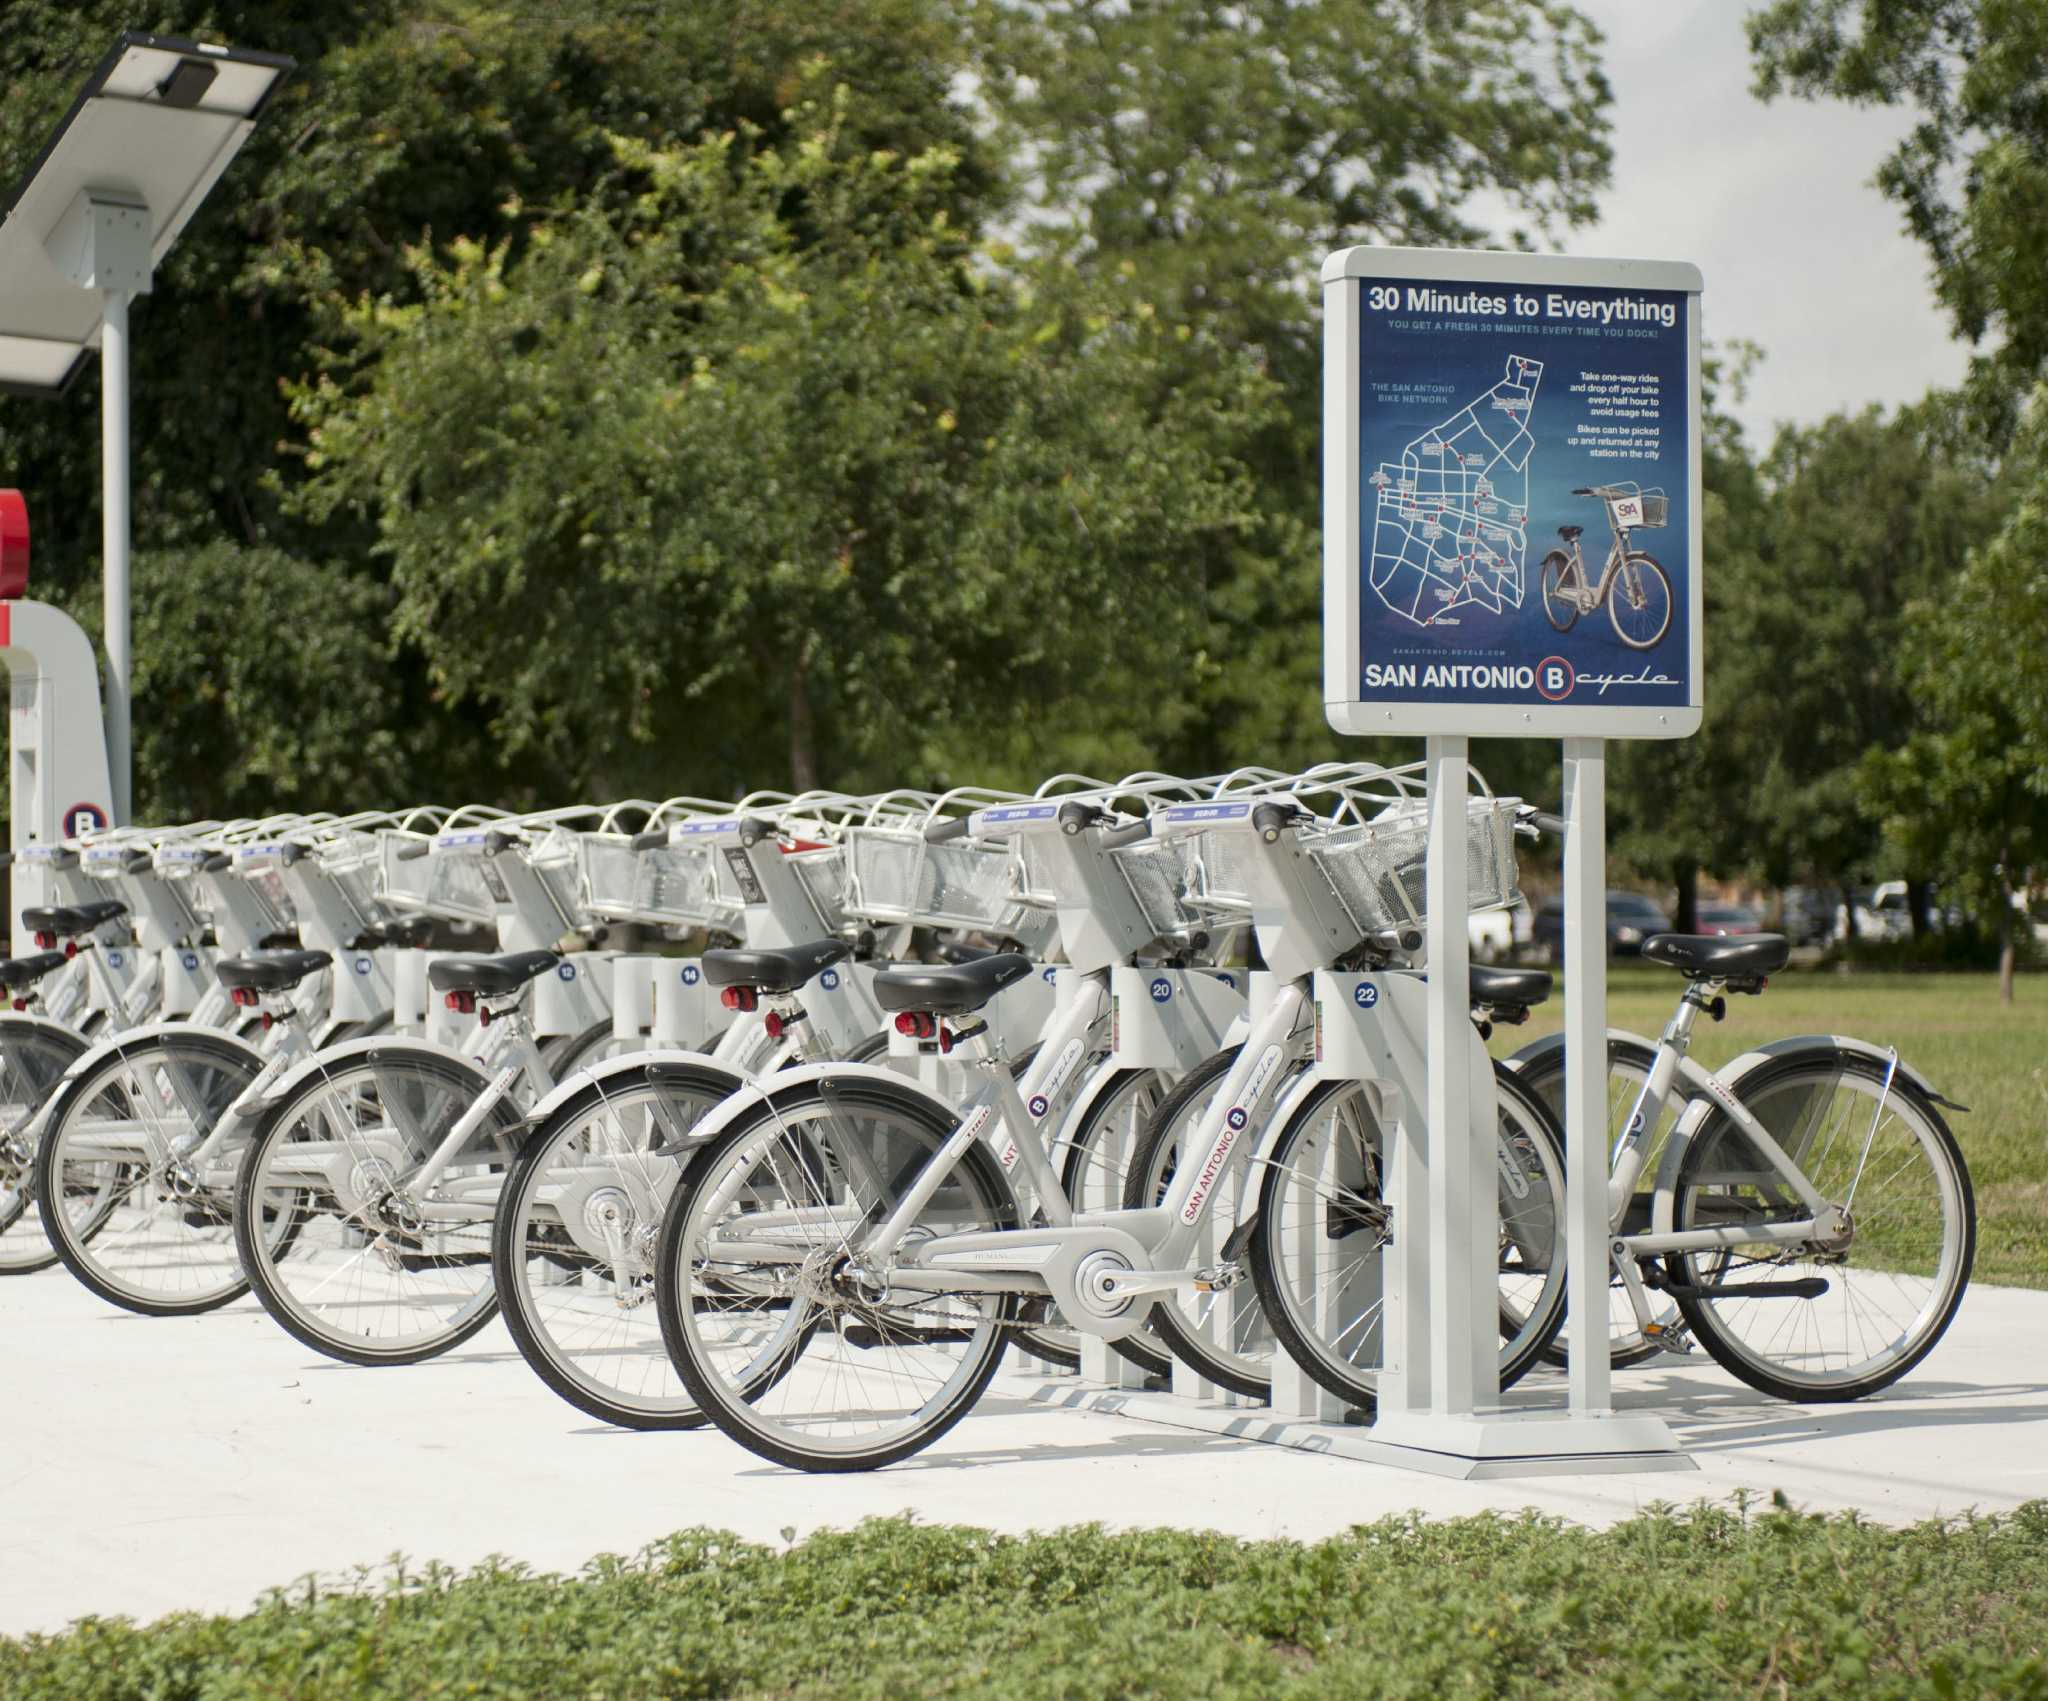 San Antonio S B Cycle Success Points To Expansion San